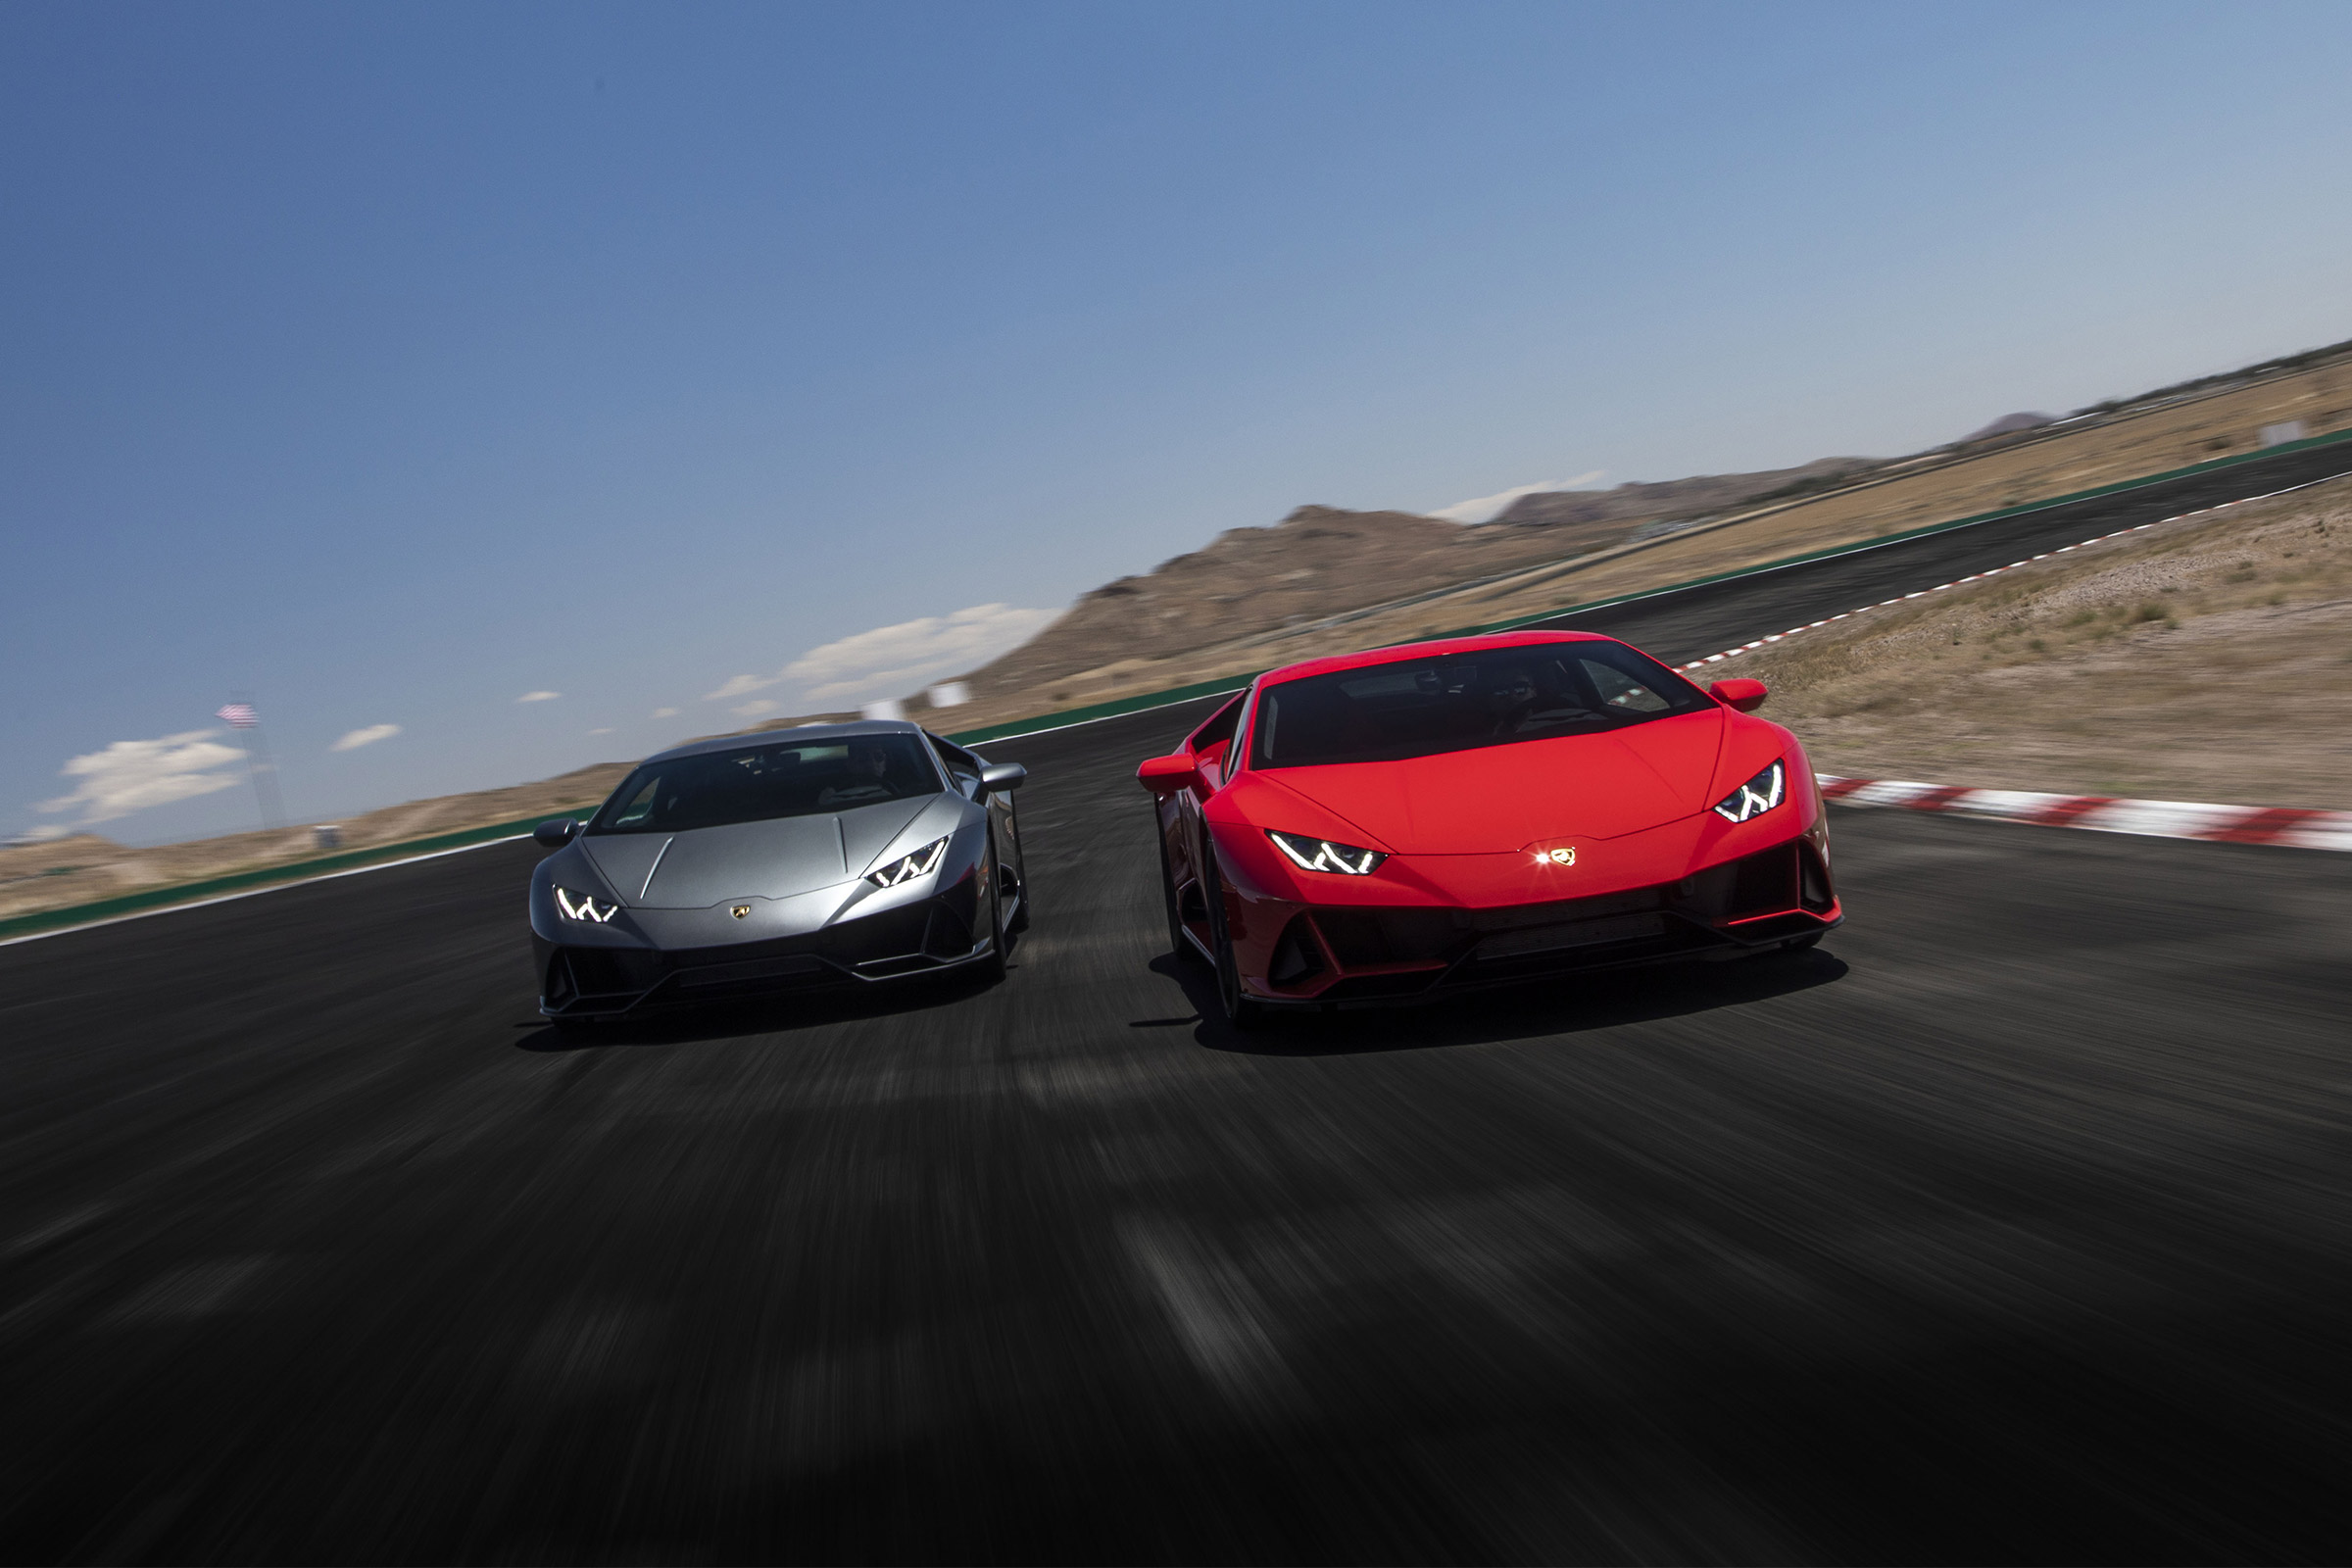 Lamborghini introduces two new models – the world rejoices